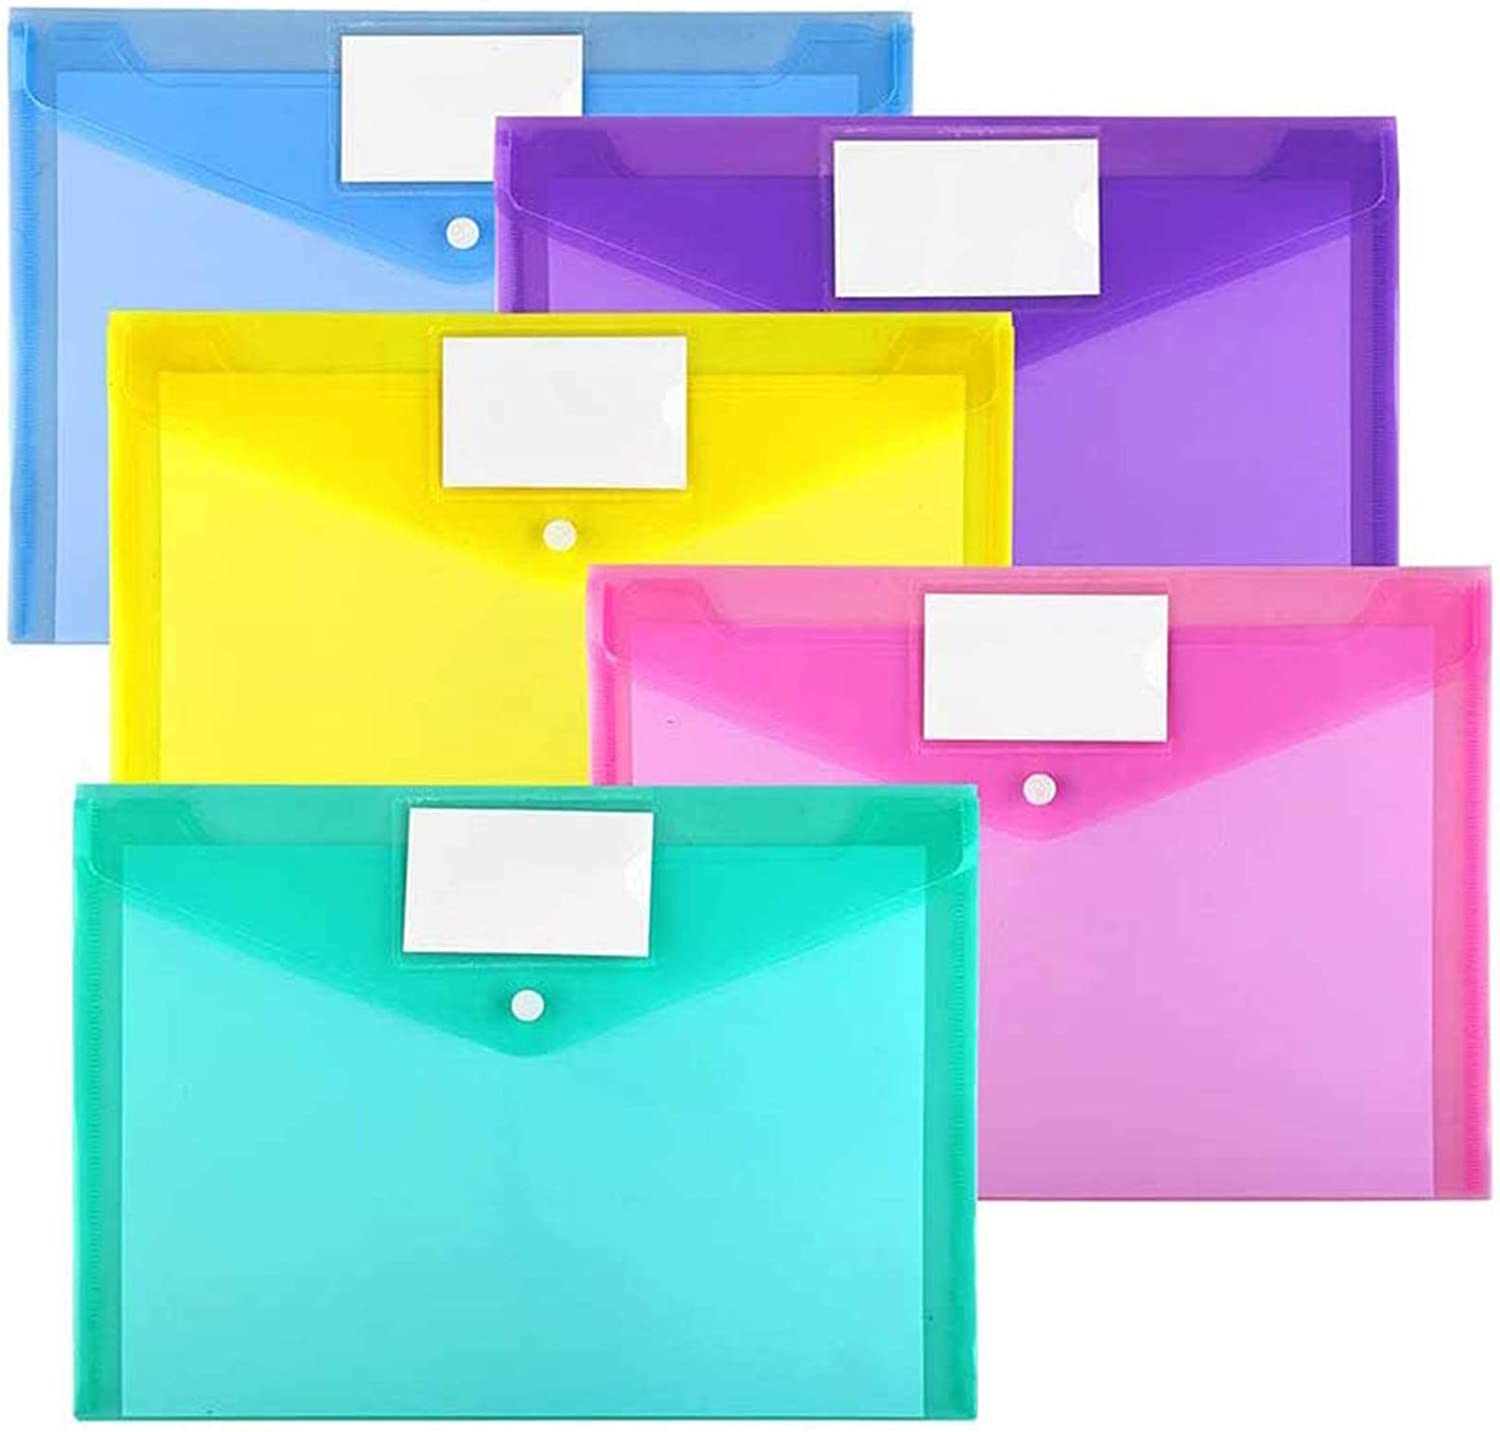 Office School Supplies Organizer 12ea//Pack Letter Envelopes 1 Pack White Transparent Deli File Plastic Envelopes with String Closure Clear Side Loading Folders Letter and A4 Size Suitable